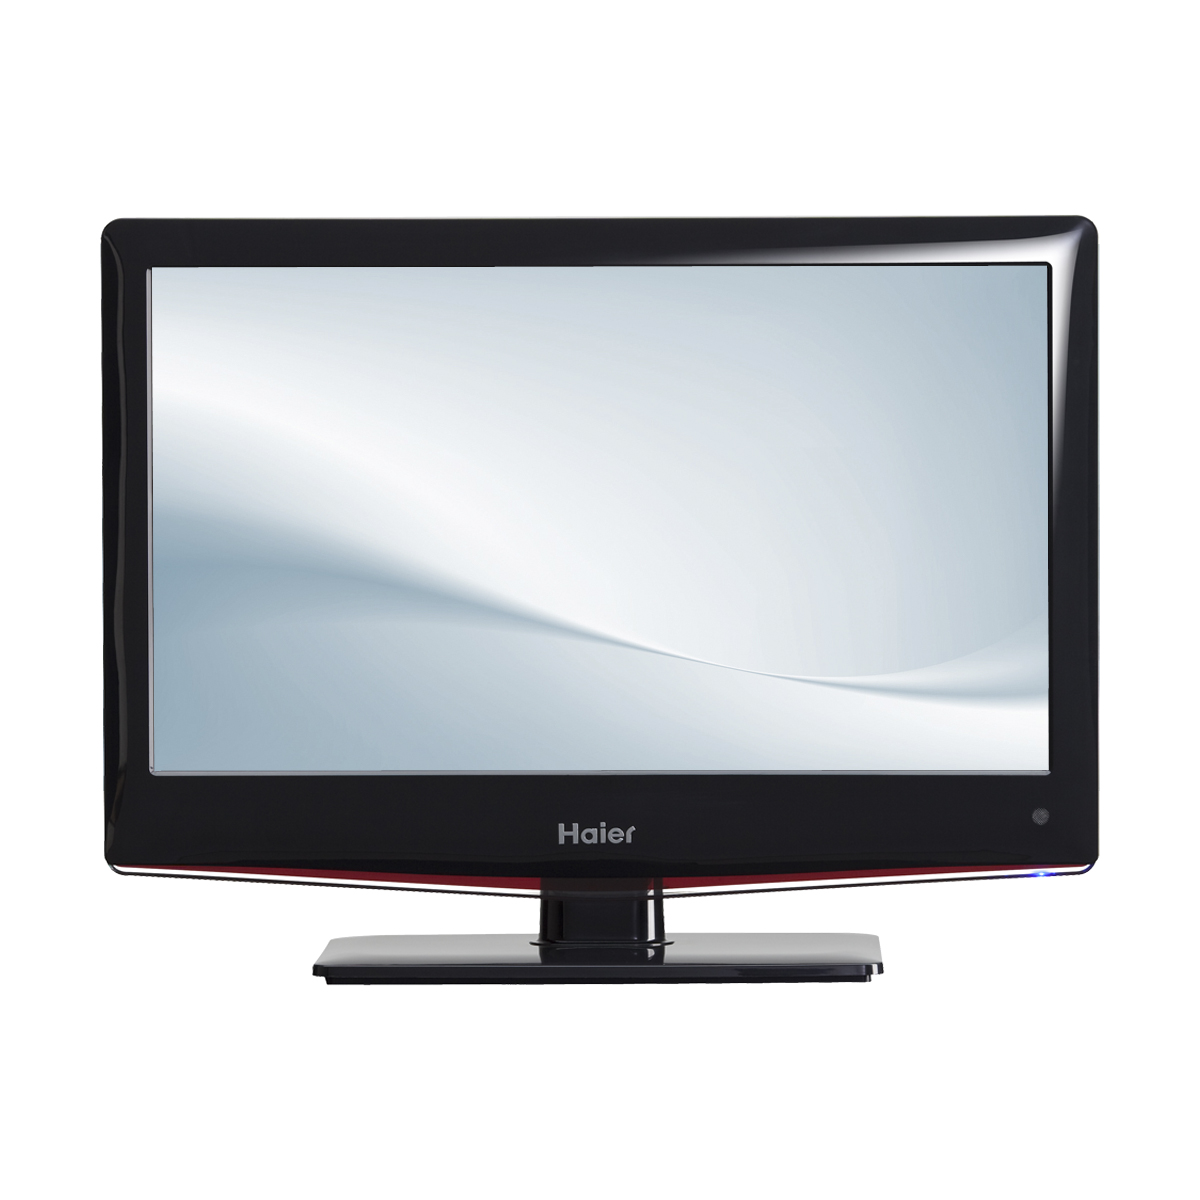 haier let26c430 lcd tv review compare prices buy online. Black Bedroom Furniture Sets. Home Design Ideas